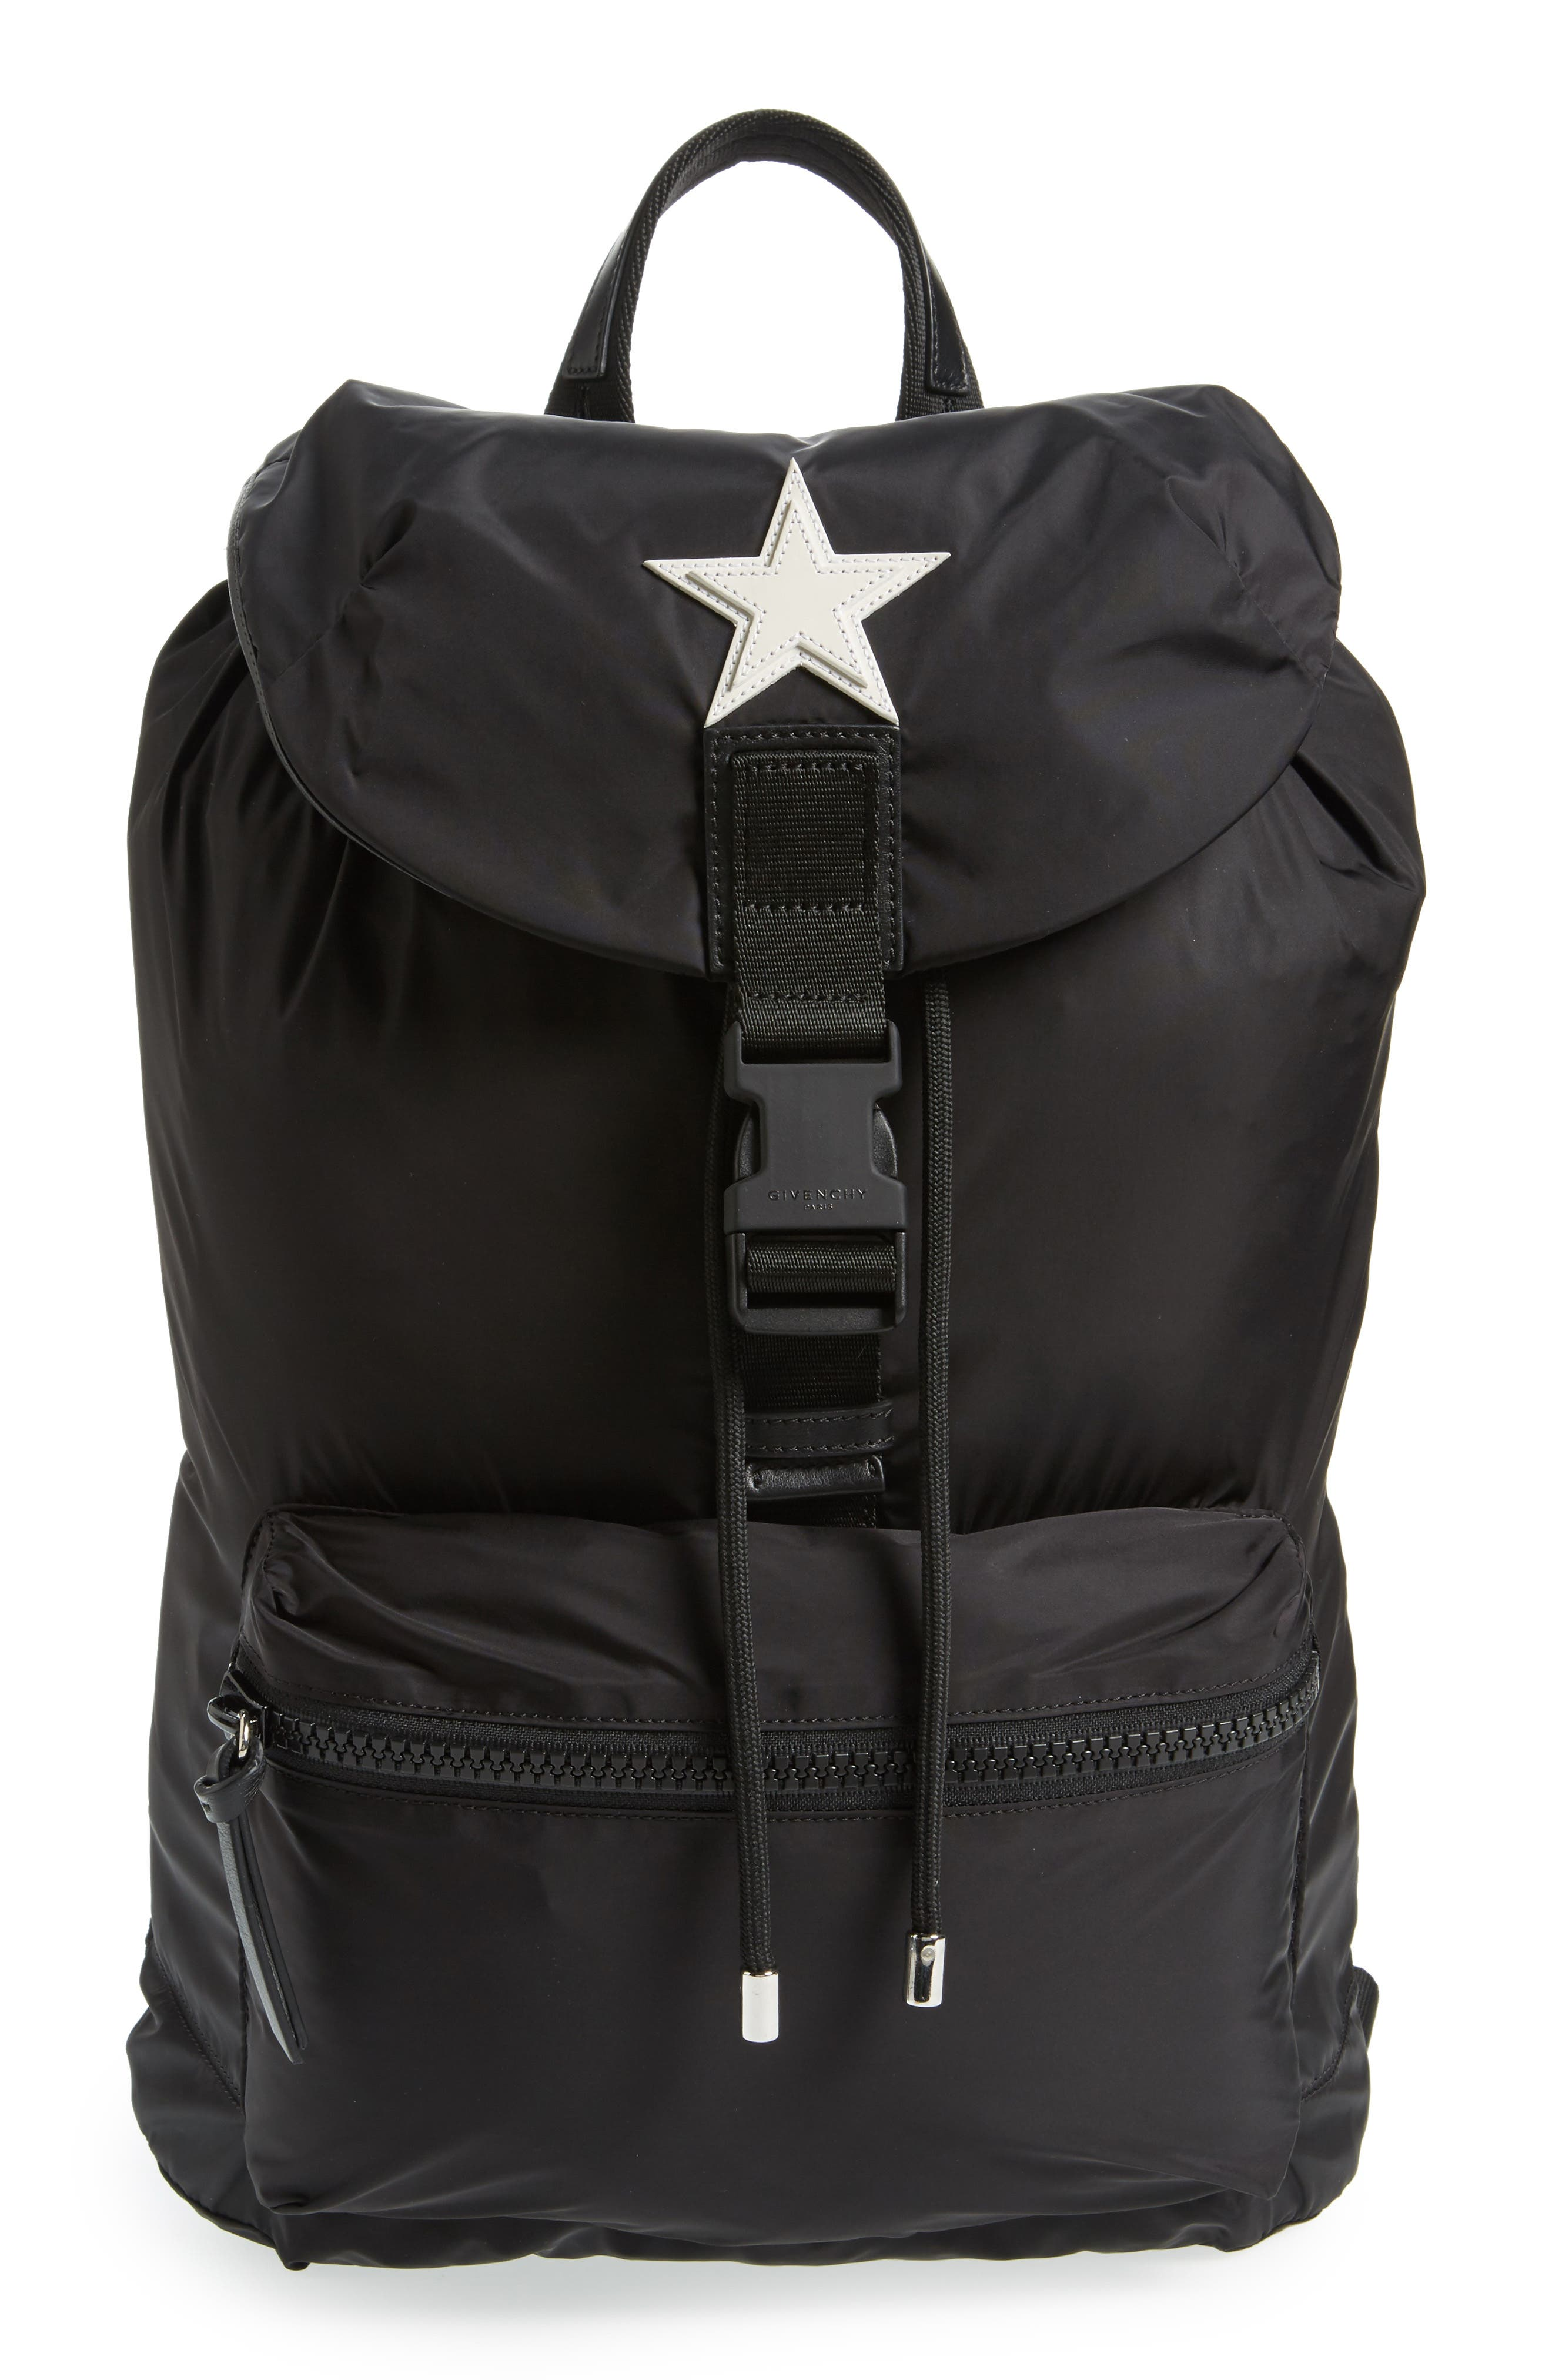 Givenchy OBS Backpack